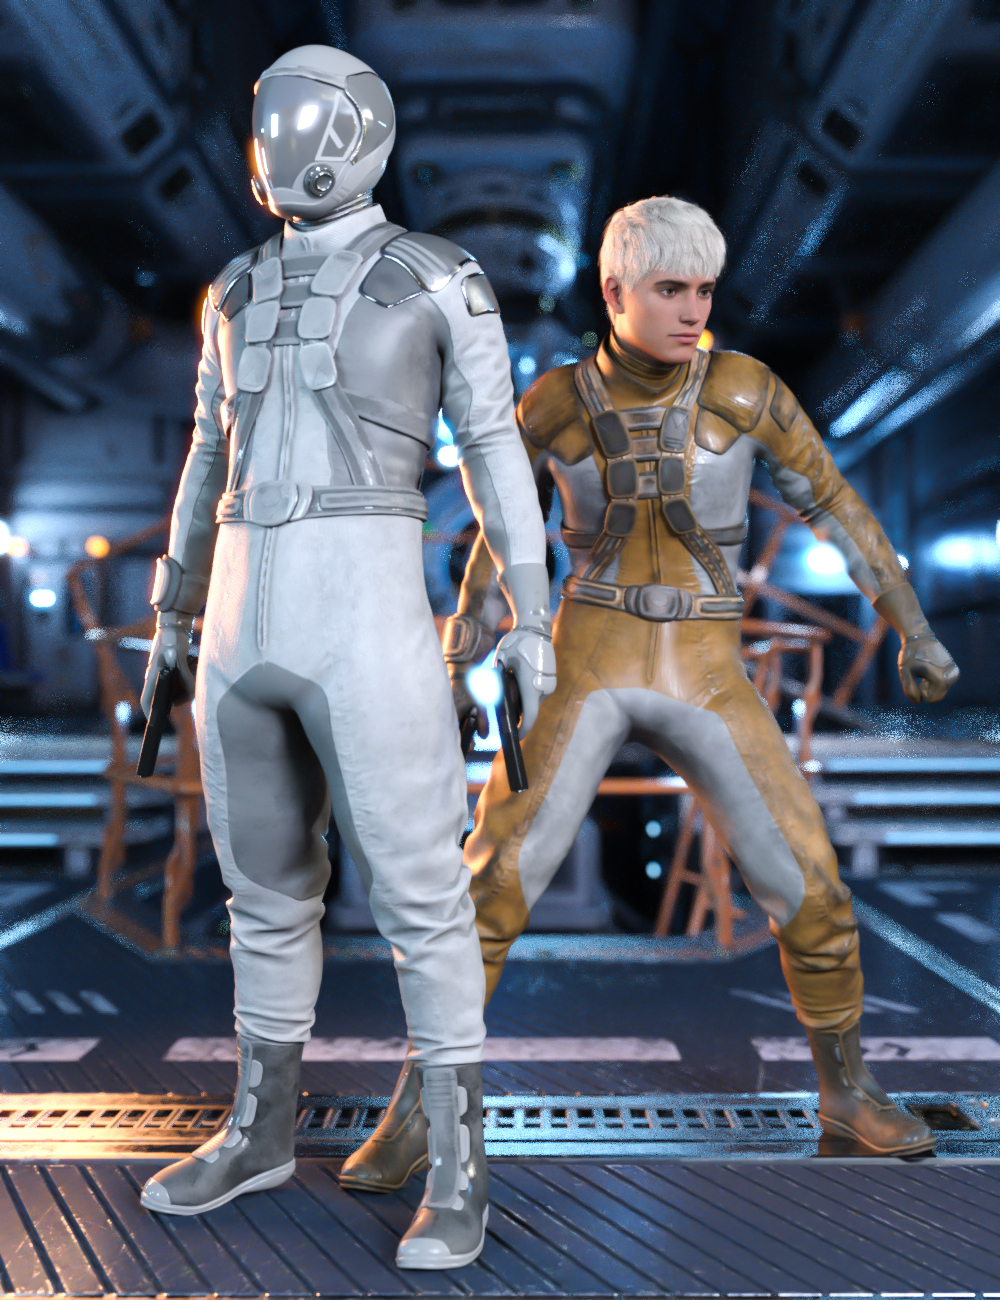 Sci-Fi Gravity Suit Outfit for Genesis 8 and 8.1 Males by: Yura, 3D Models by Daz 3D